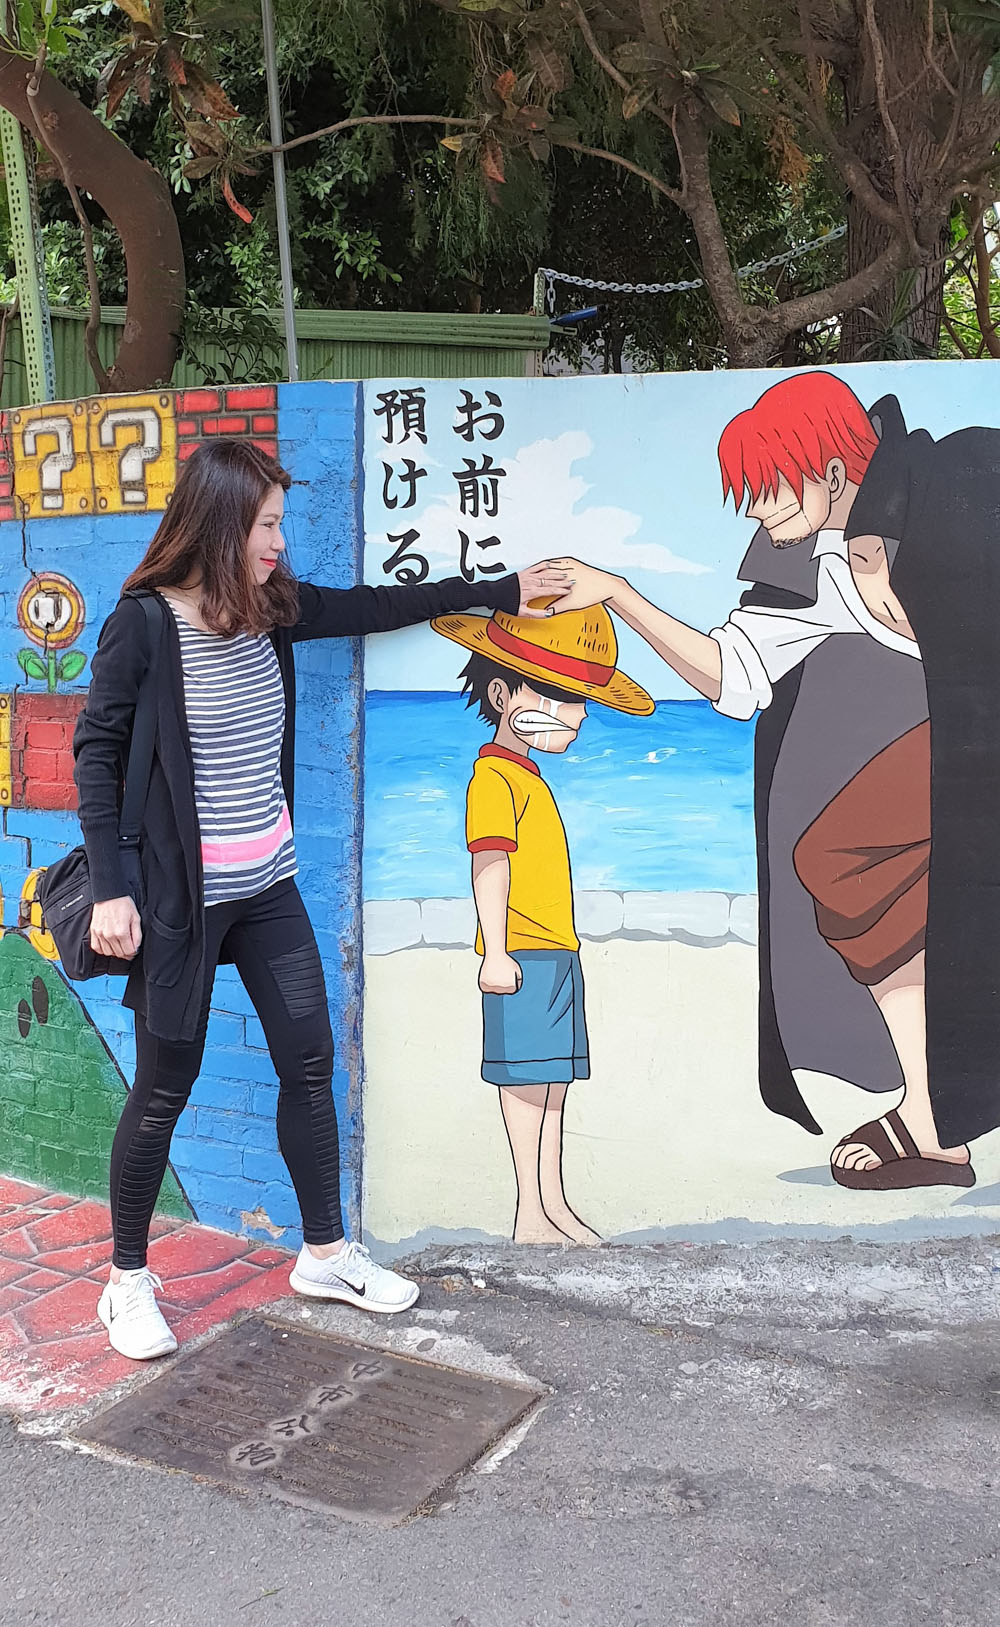 Animation Lane Taichung